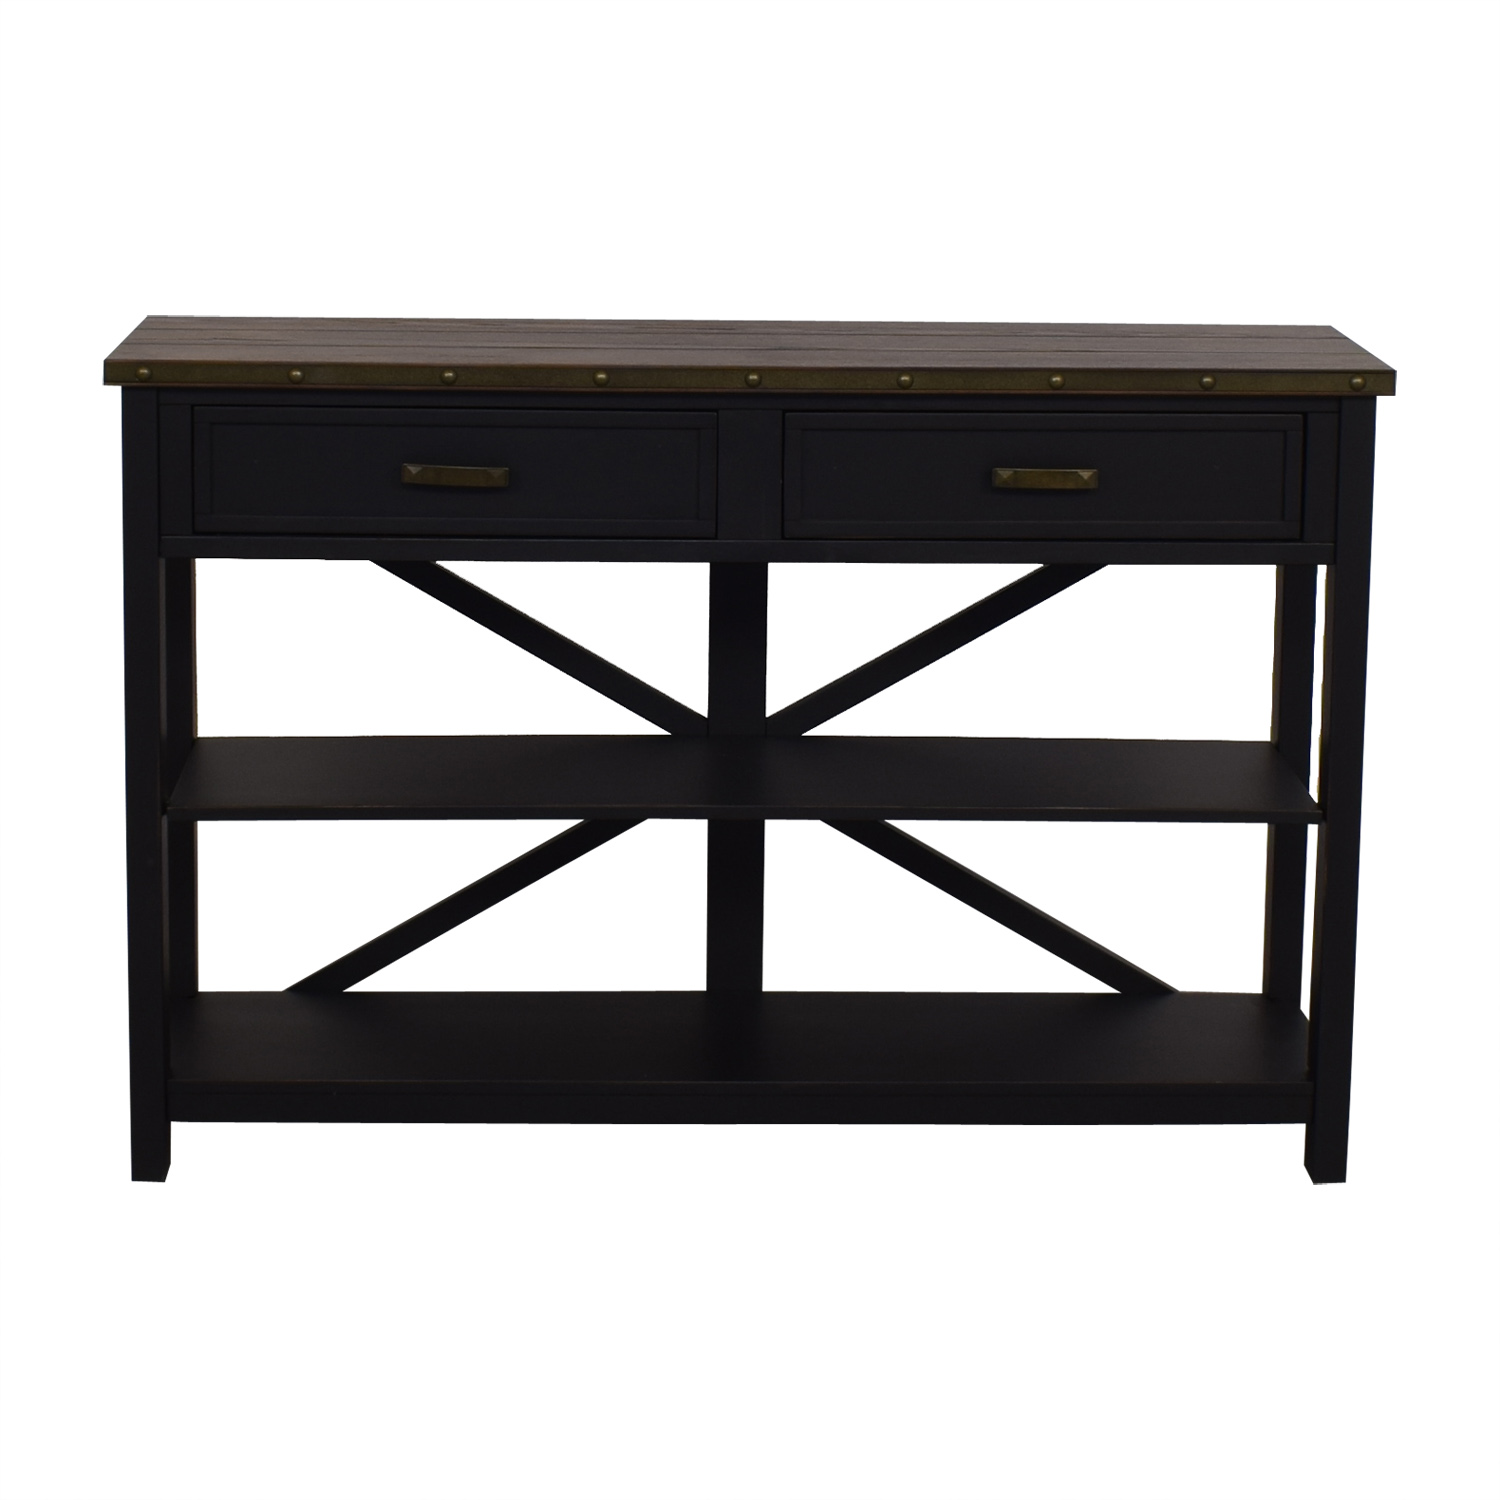 Raymour & Flanigan Raymour & Flanigan Brennan Sofa Table price